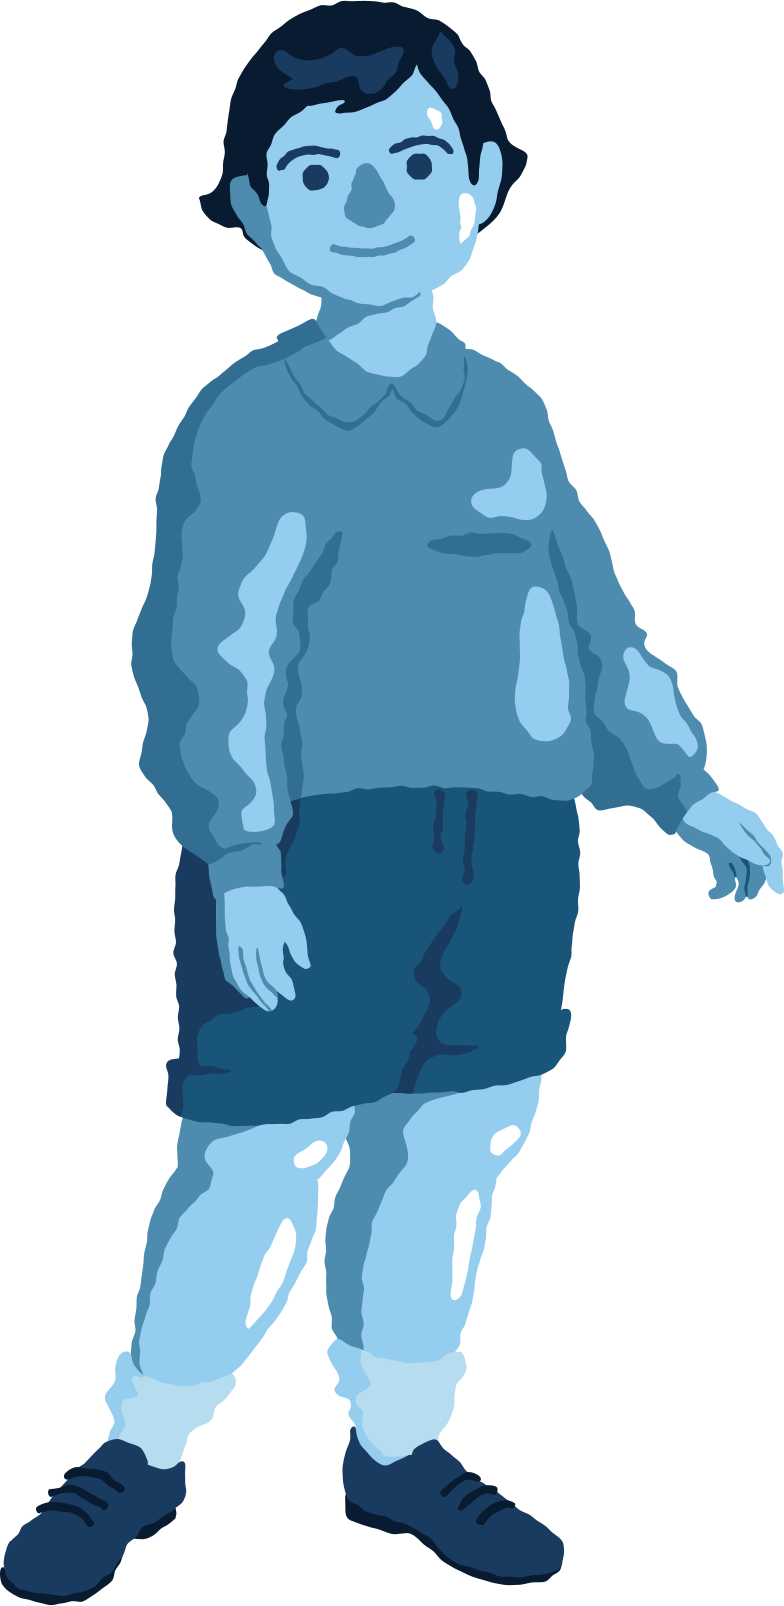 style chubby boy standing front Vector images in PNG and SVG | Icons8 Illustrations